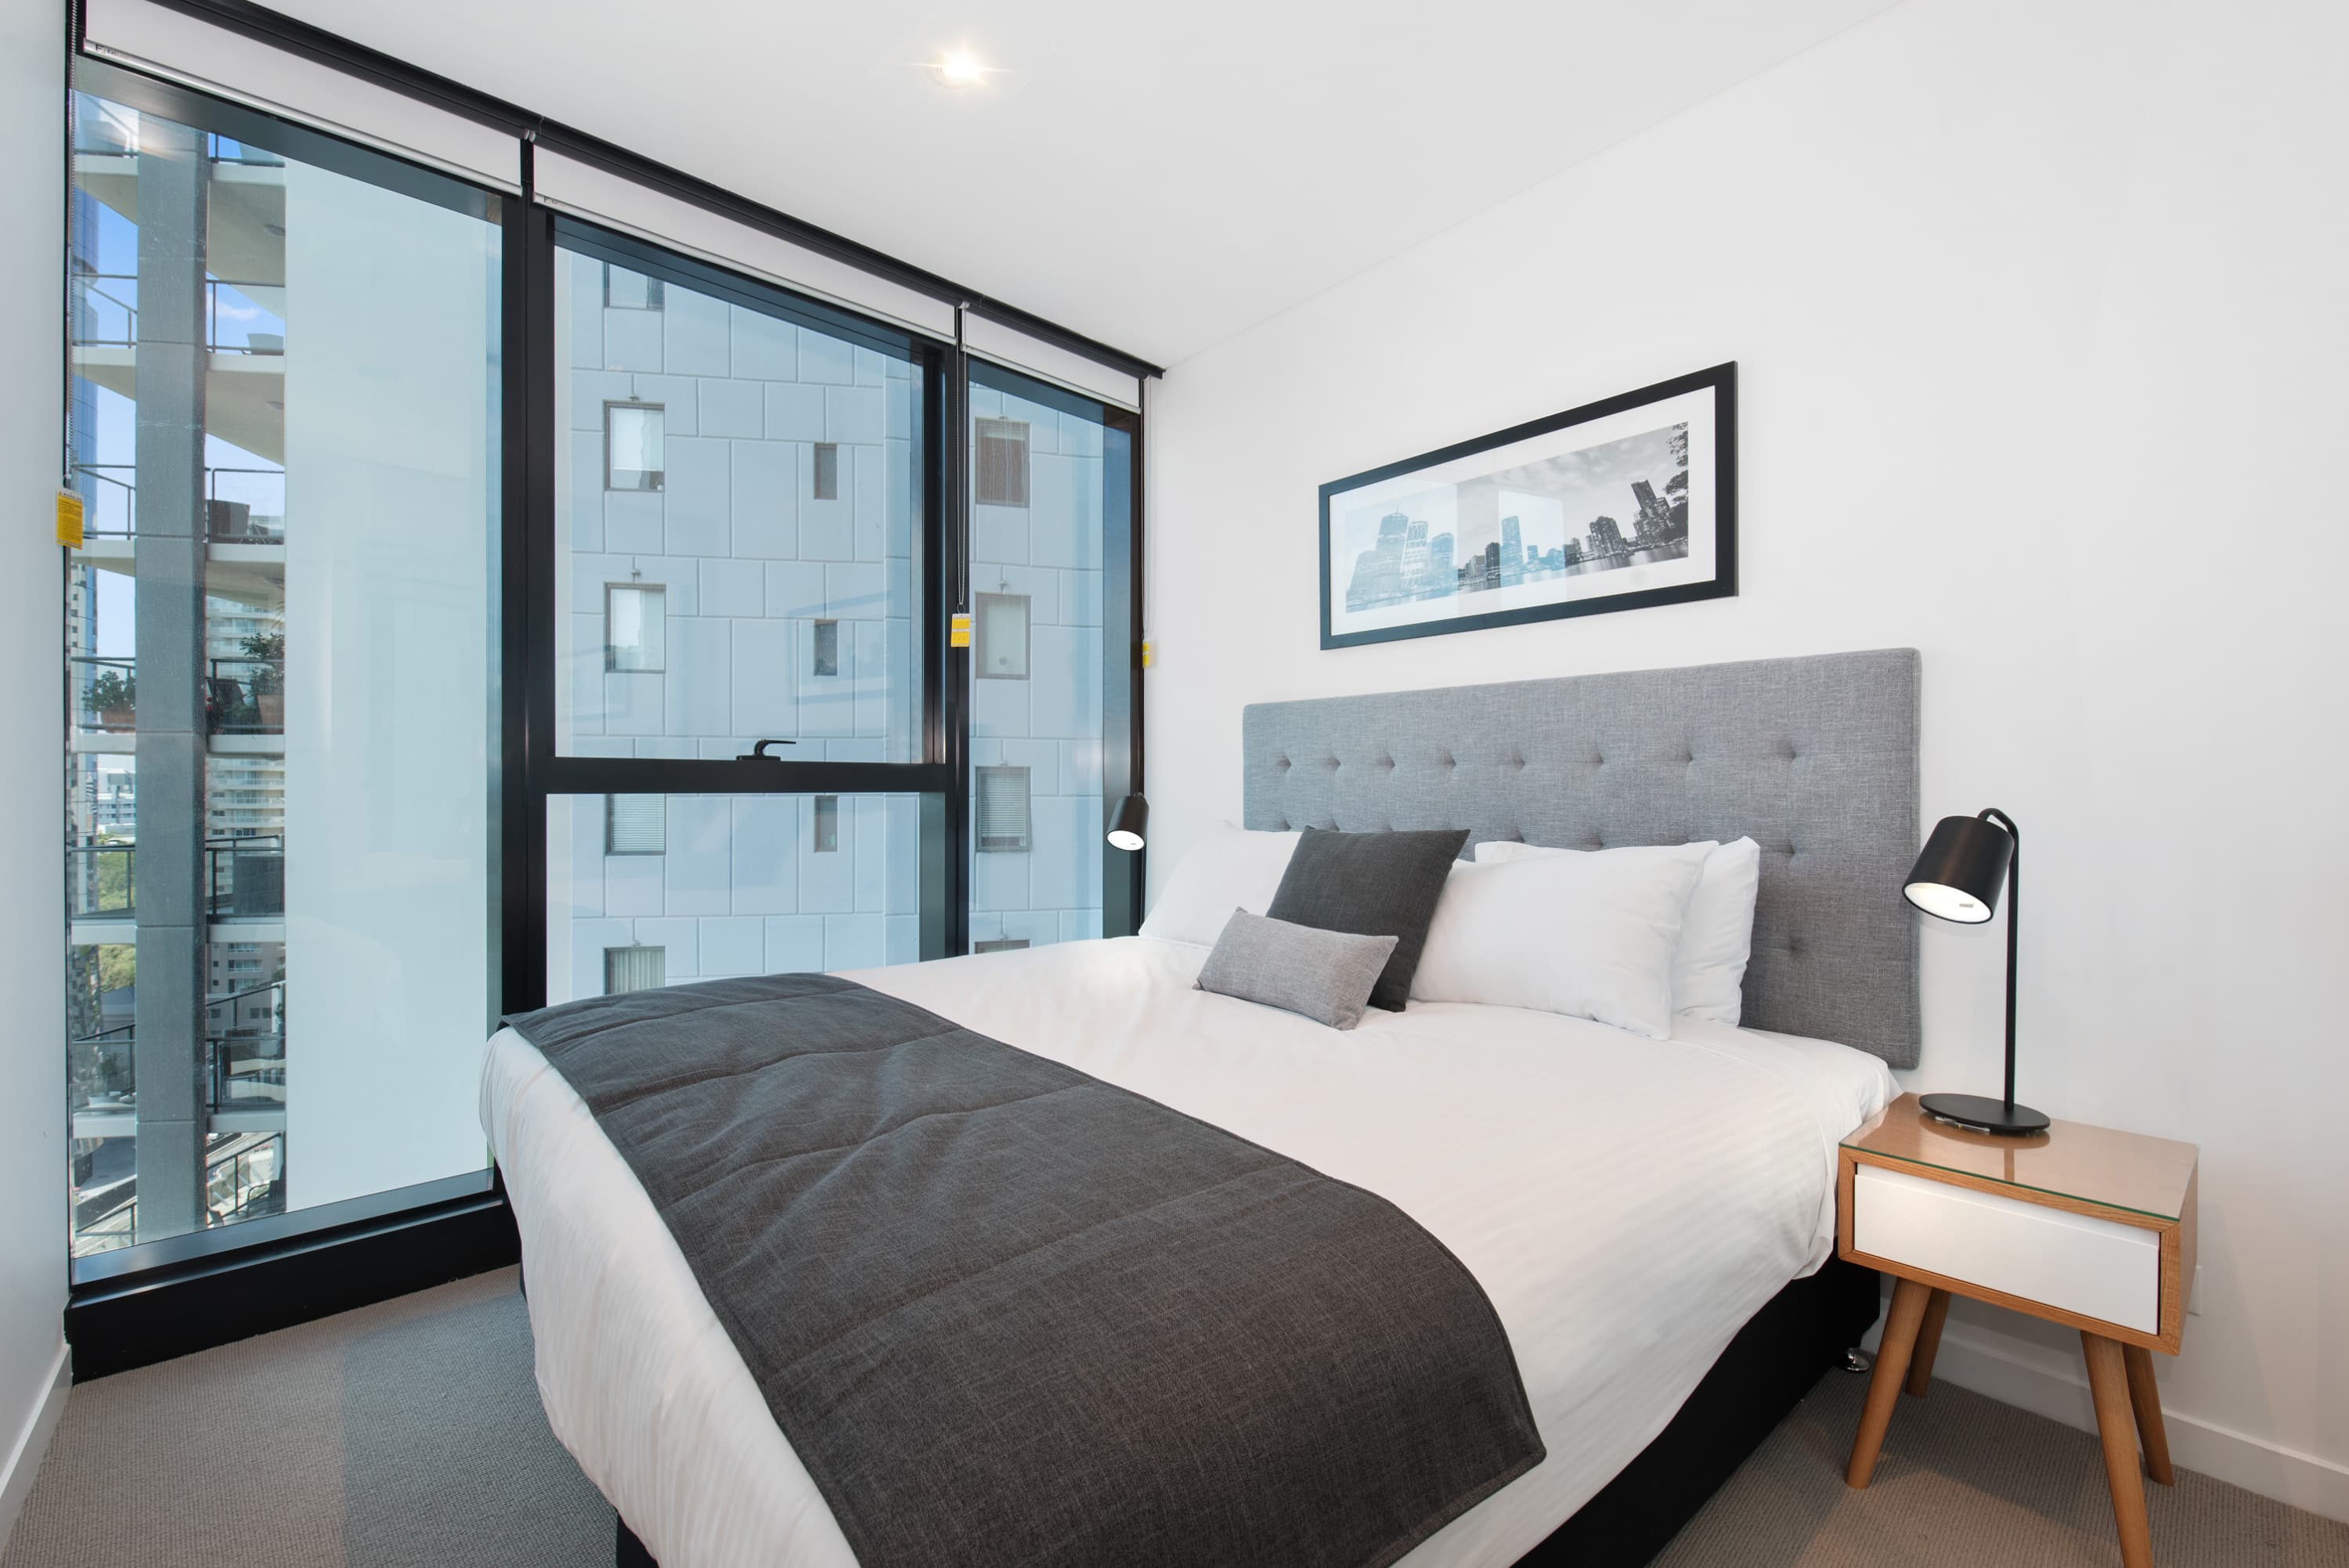 1 Bedroom Apartment Brisbane 1 Bedroom Apartment Accommodation Brisbane Skytower